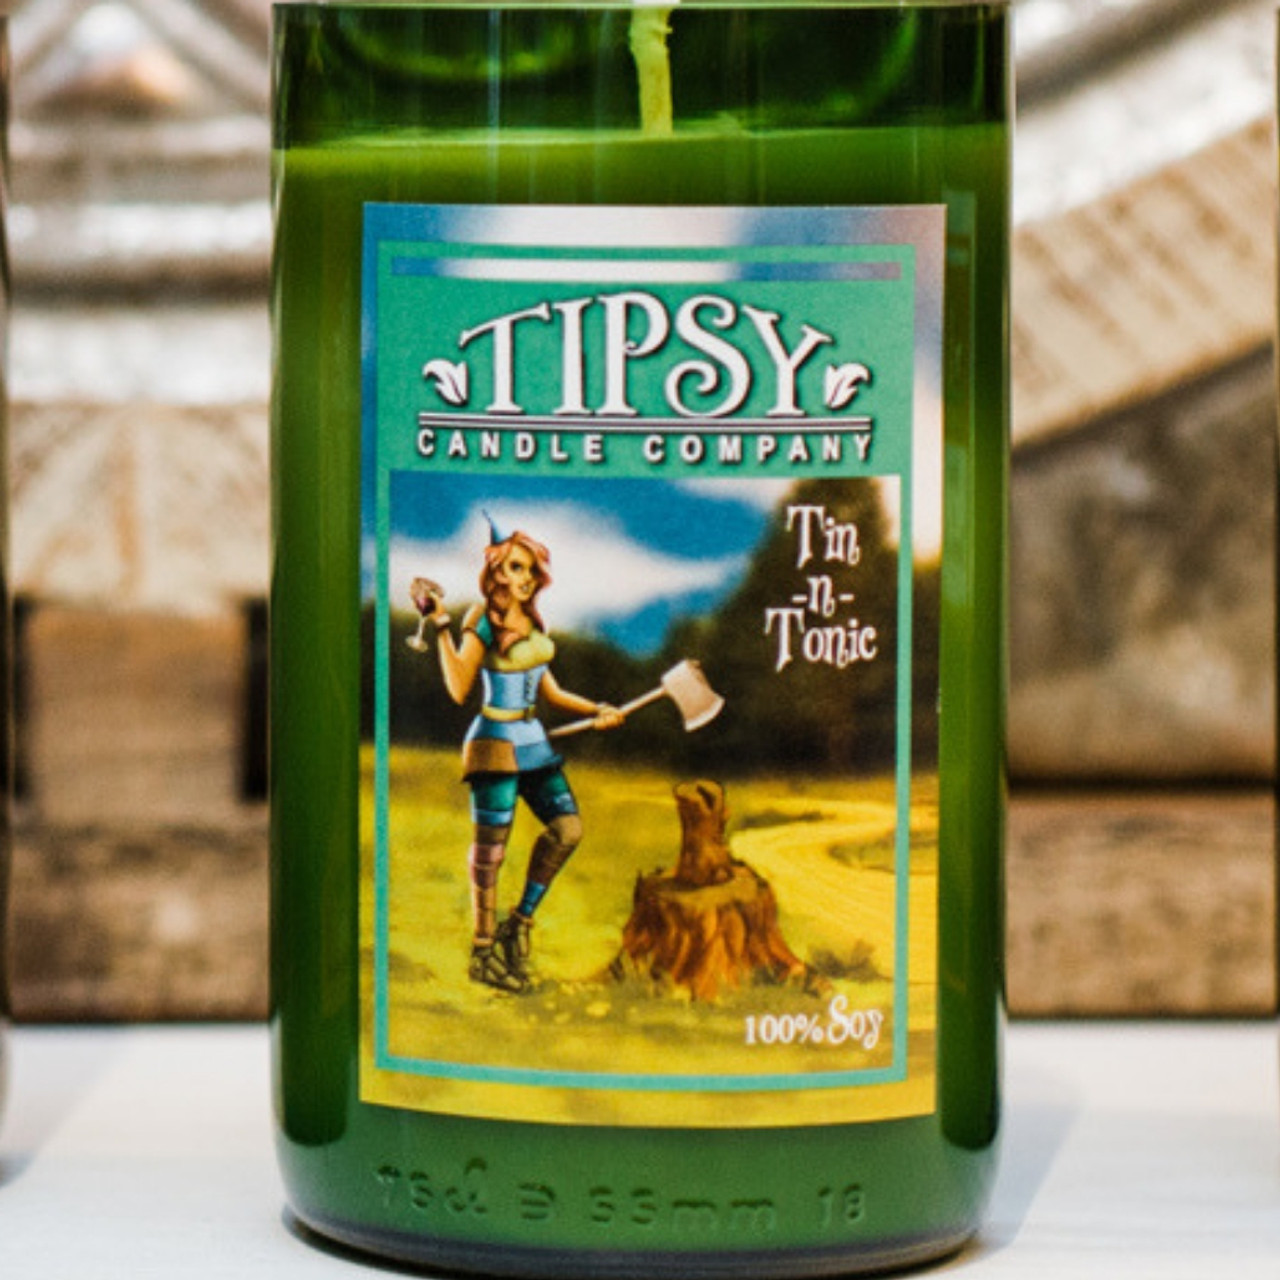 Tin-n-Tonic soy candle made by Tipsy Candle Company.